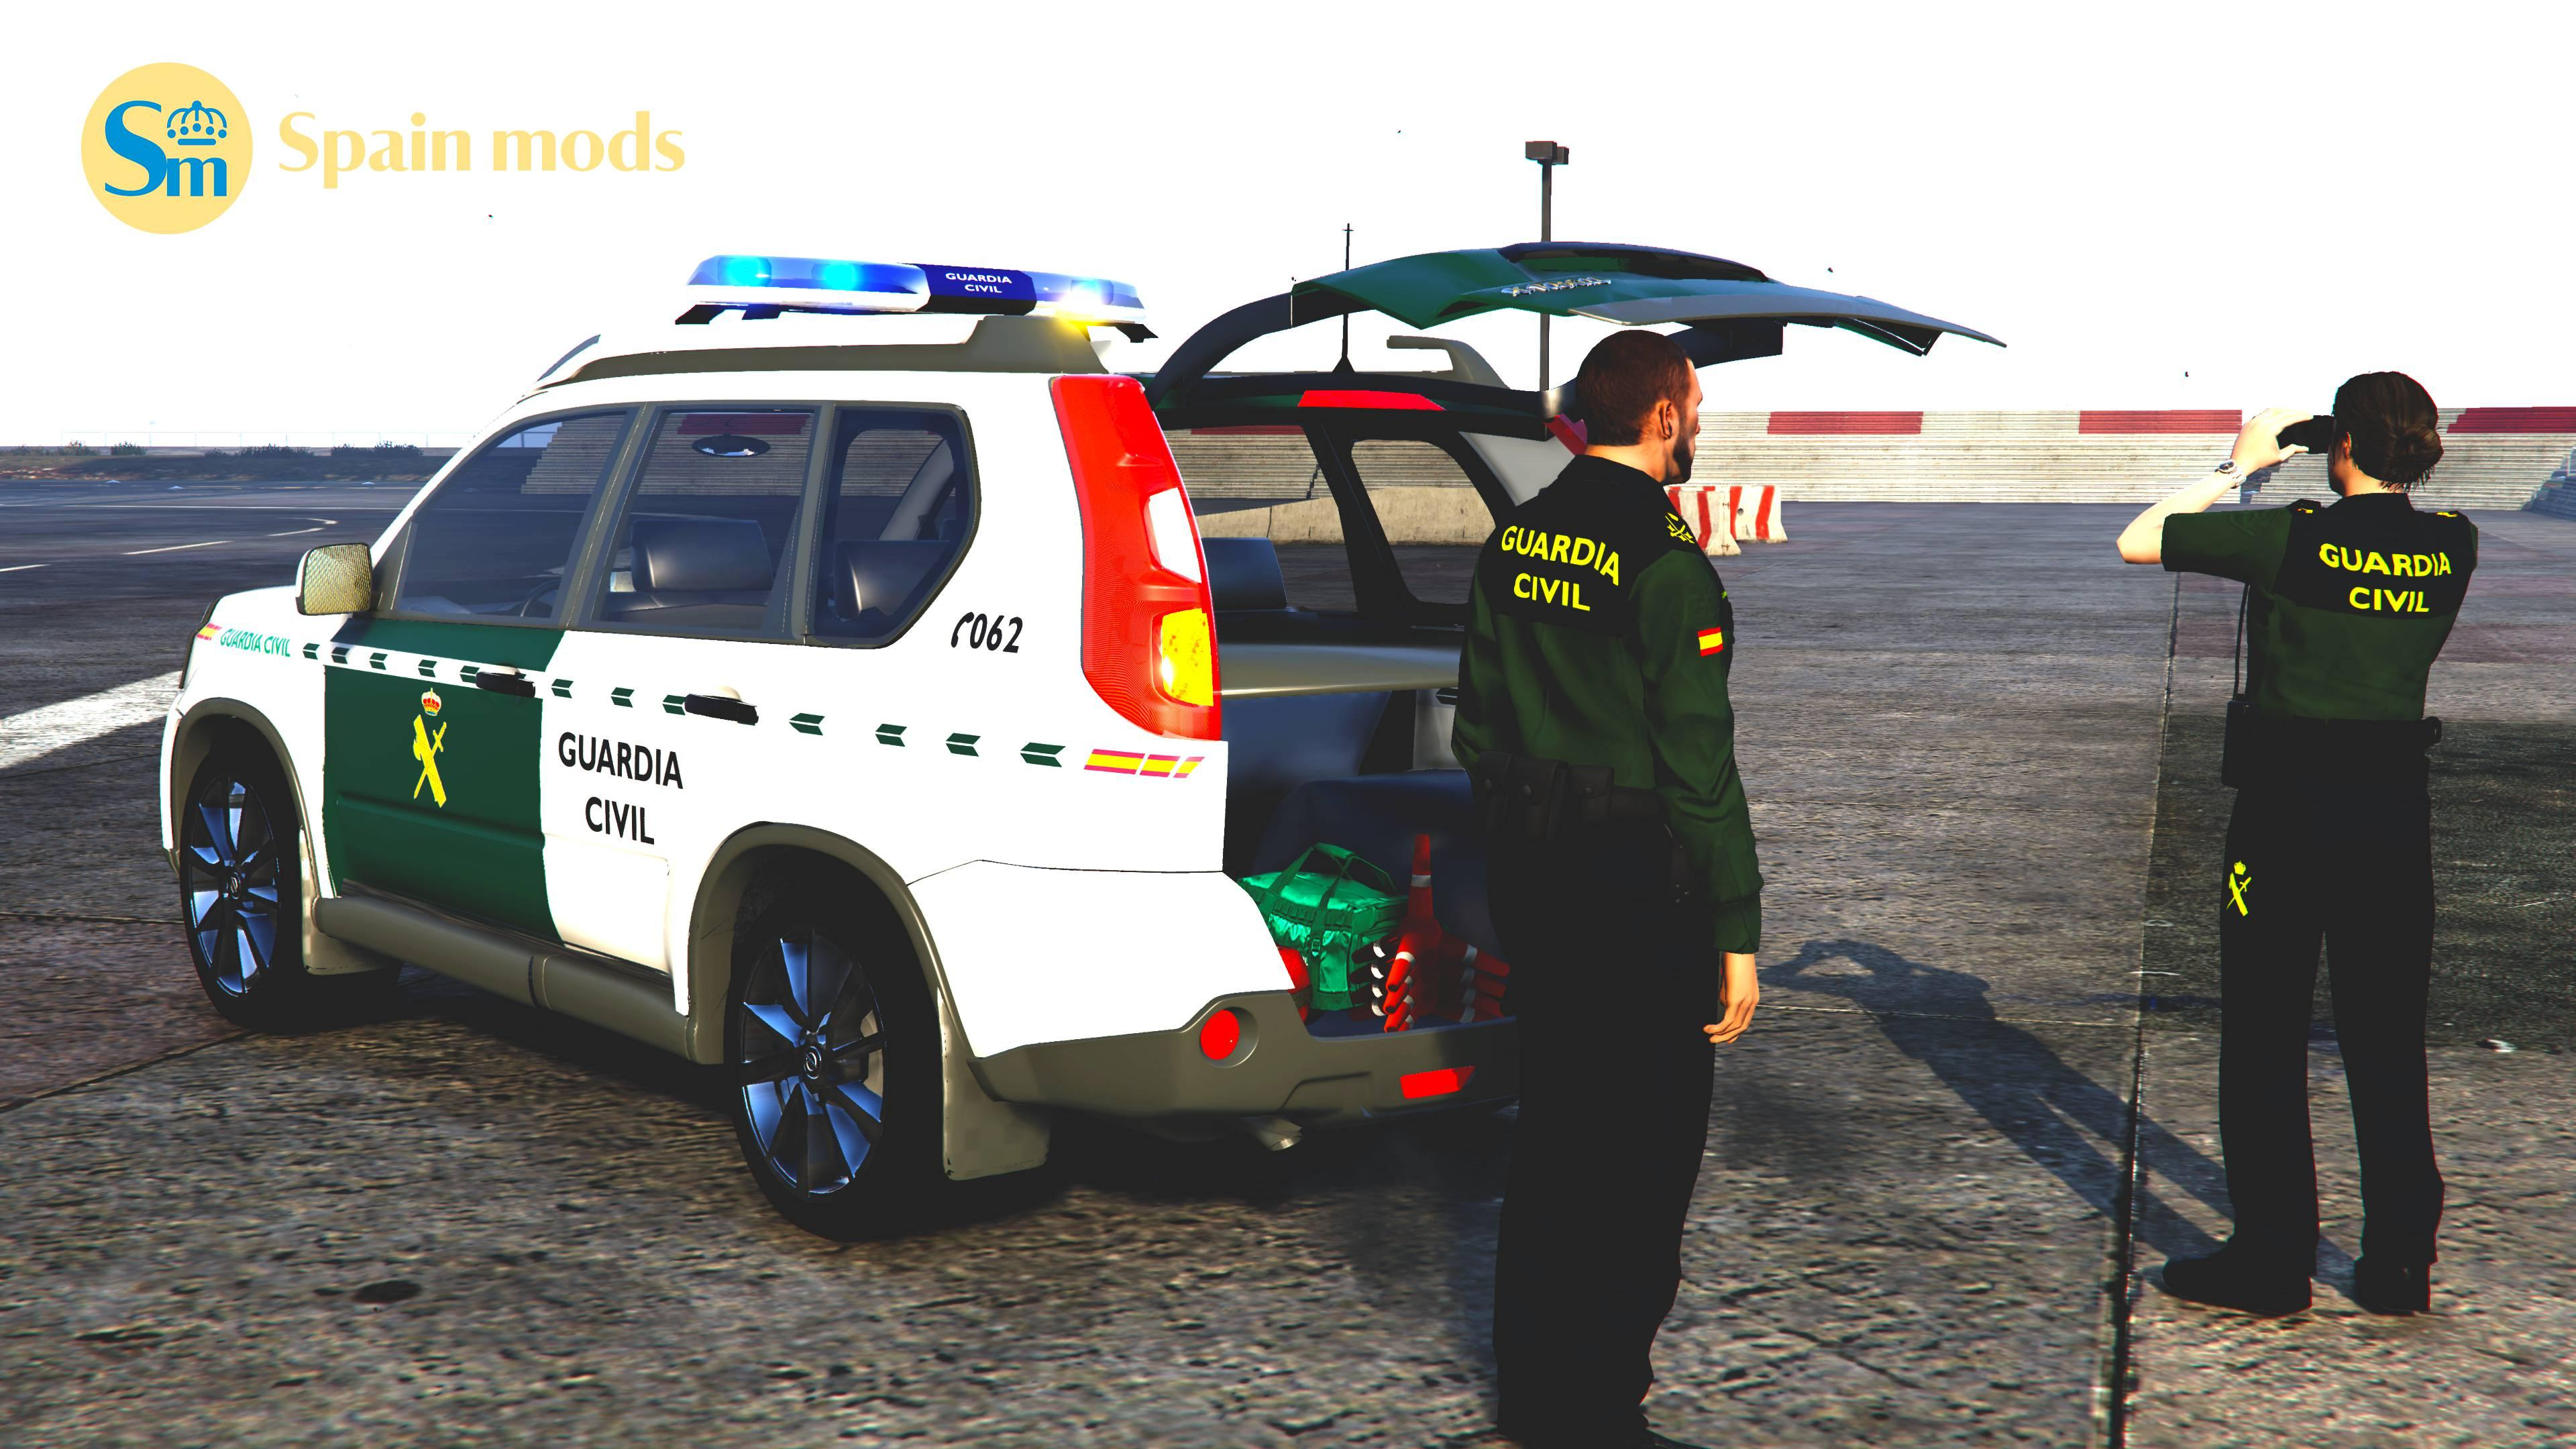 nissan x trail versi n guardia civil els gta5. Black Bedroom Furniture Sets. Home Design Ideas